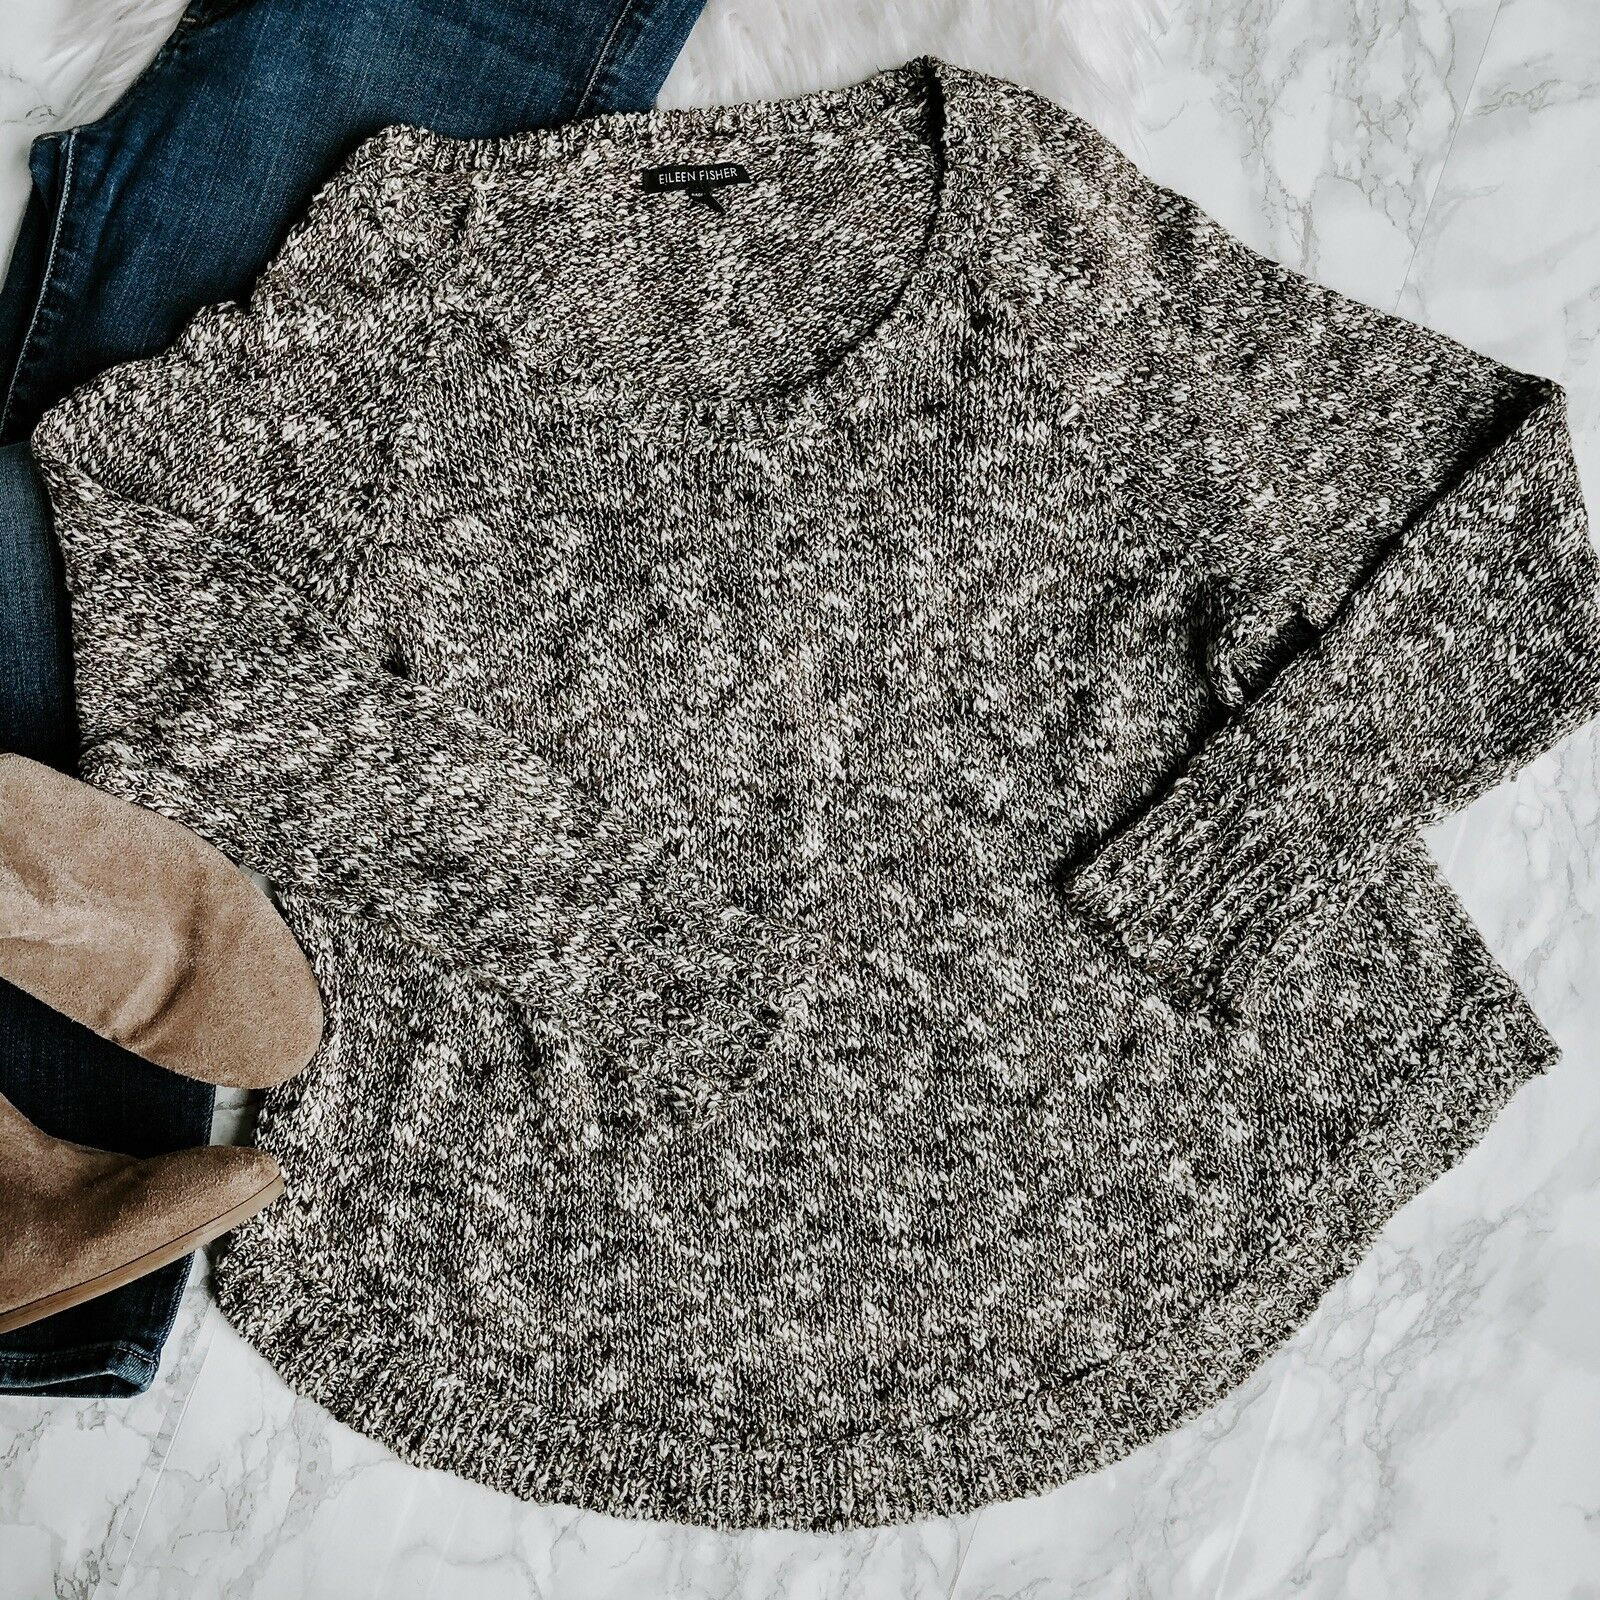 Eileen Fisher Sweater Brown Scoop Neck Oversized Marled Knit Womens M